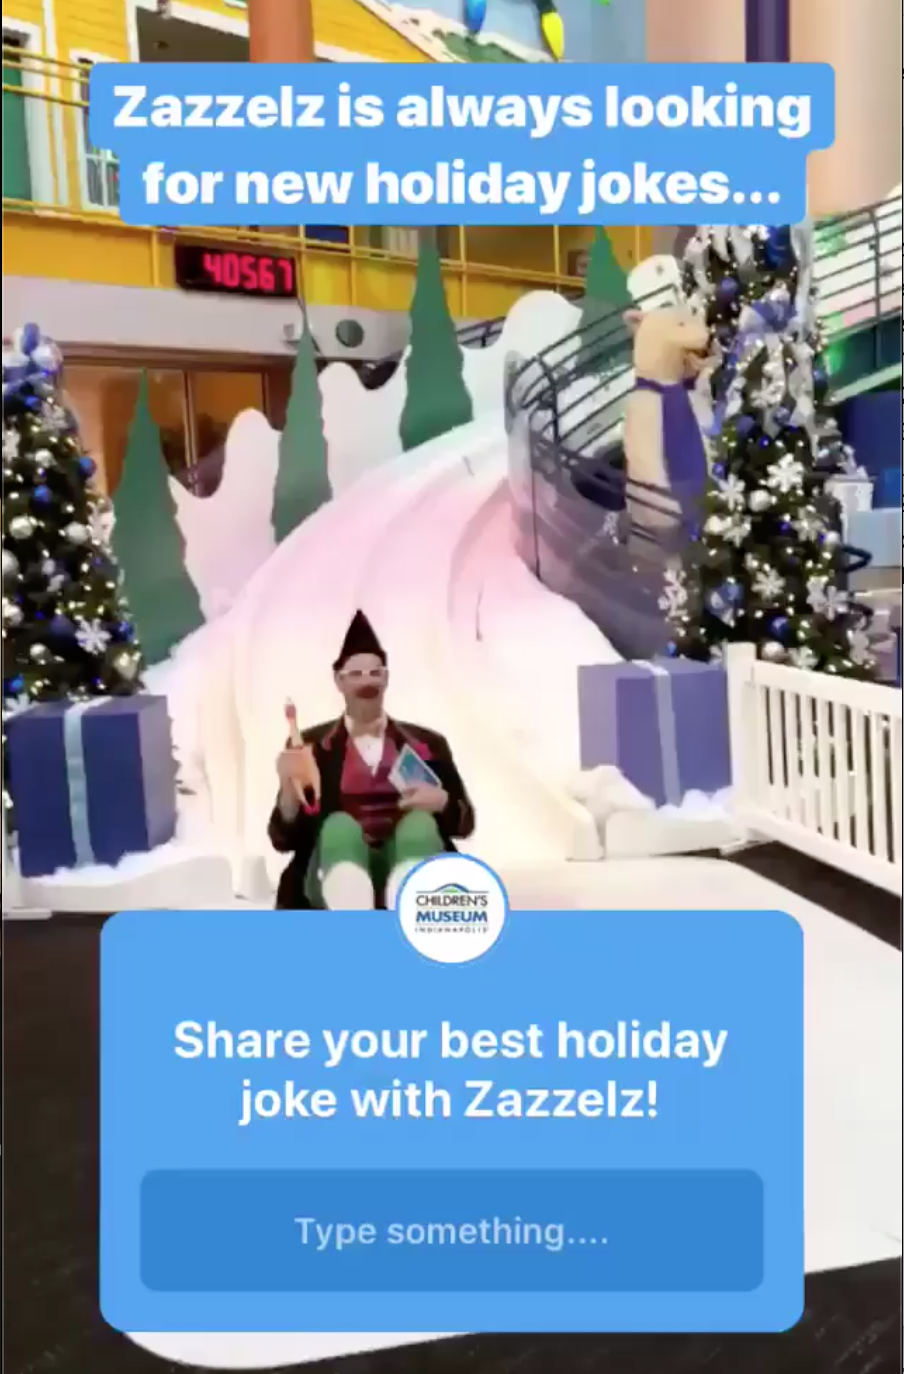 Indy Children's Museum - Instagram Stories questions